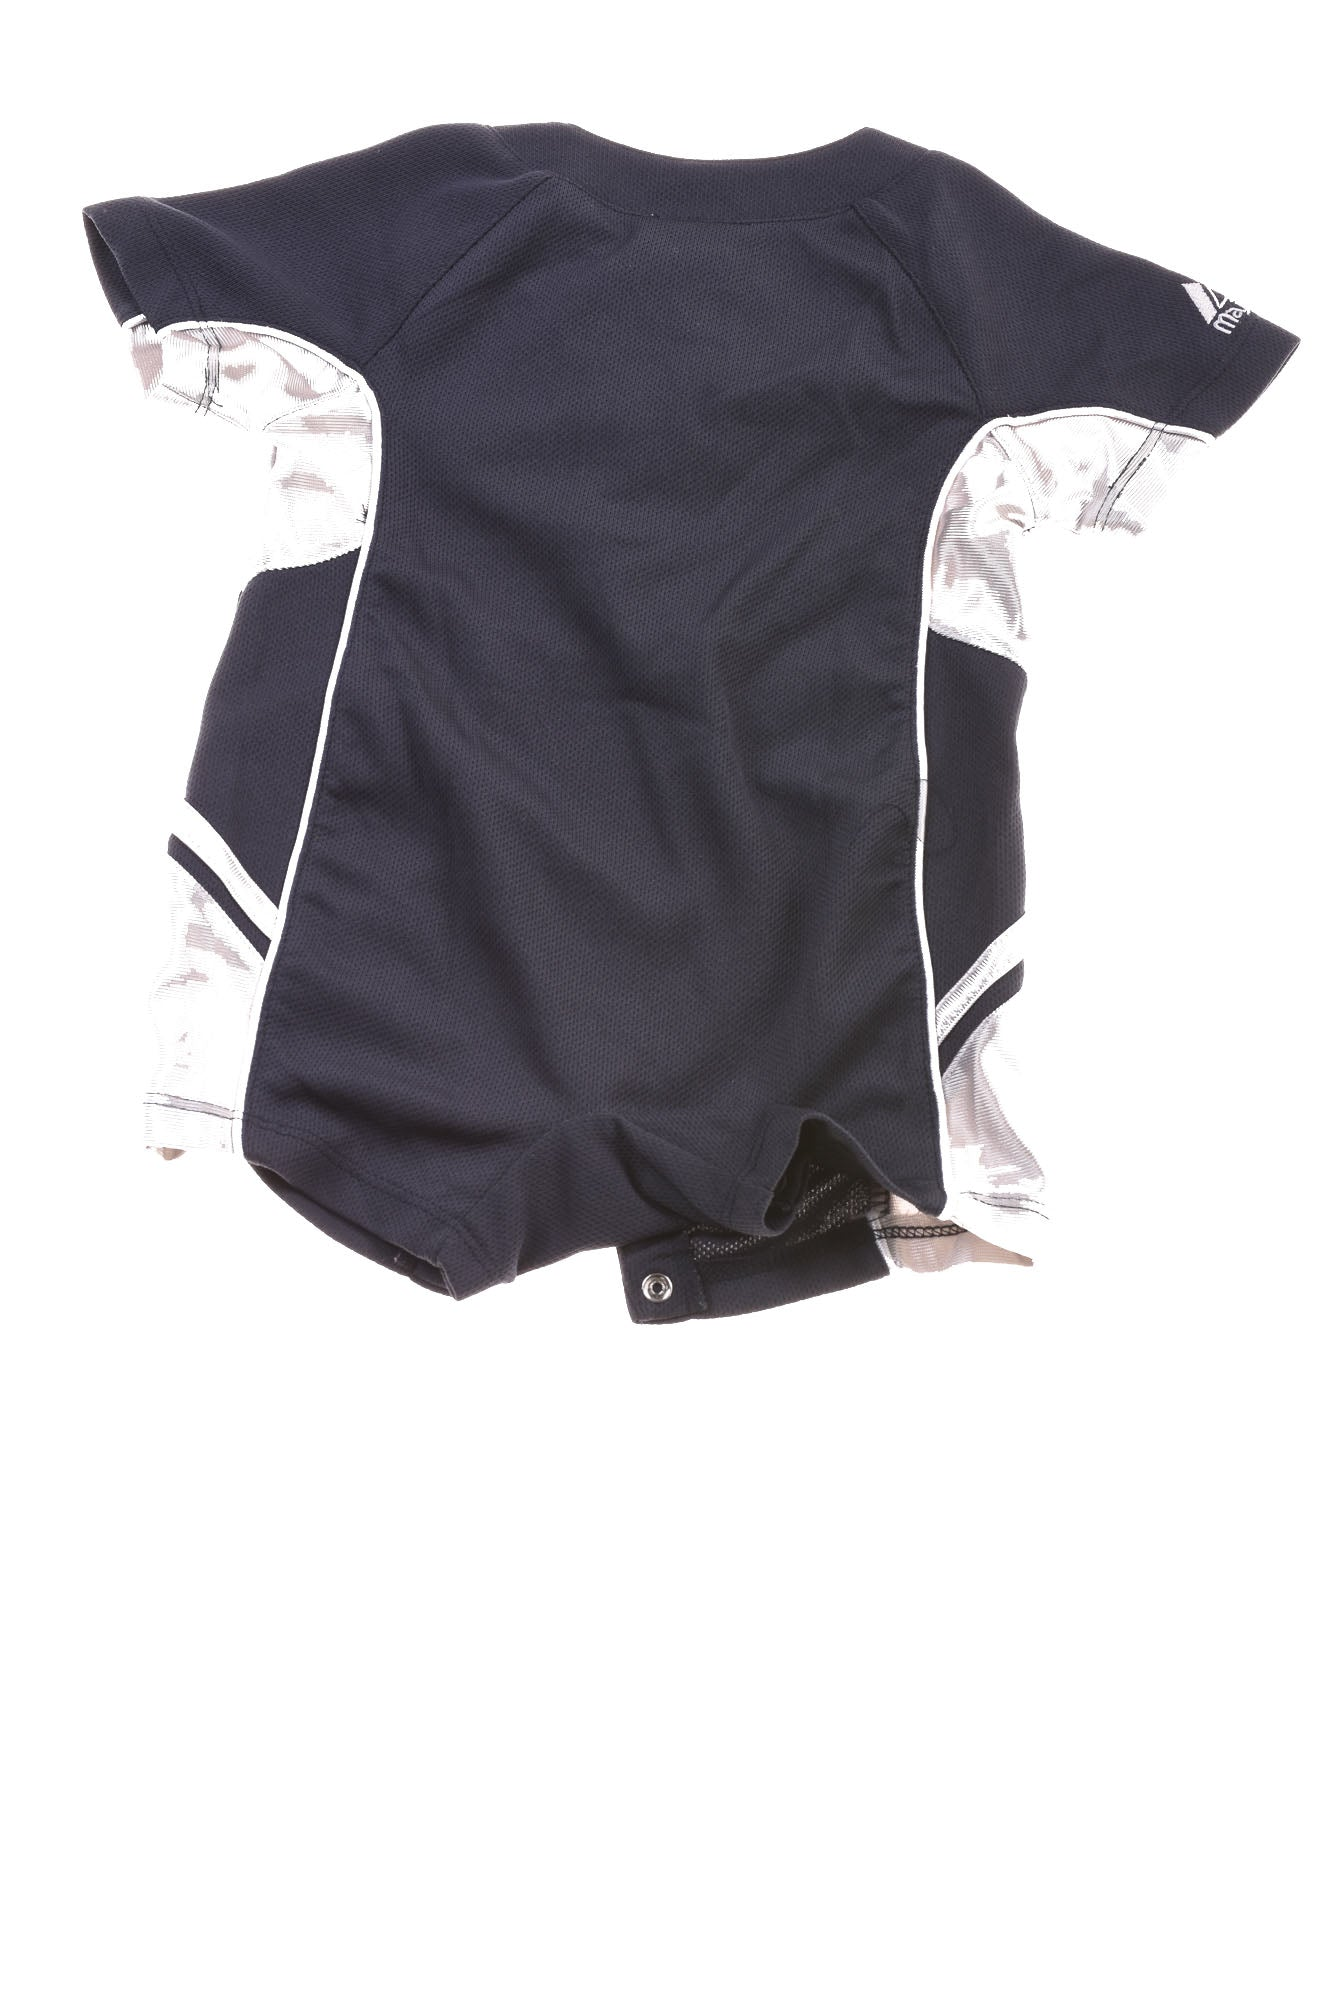 USED Majestic Baby Boy s New York Yankees Body Suit 6 9 Months Blue